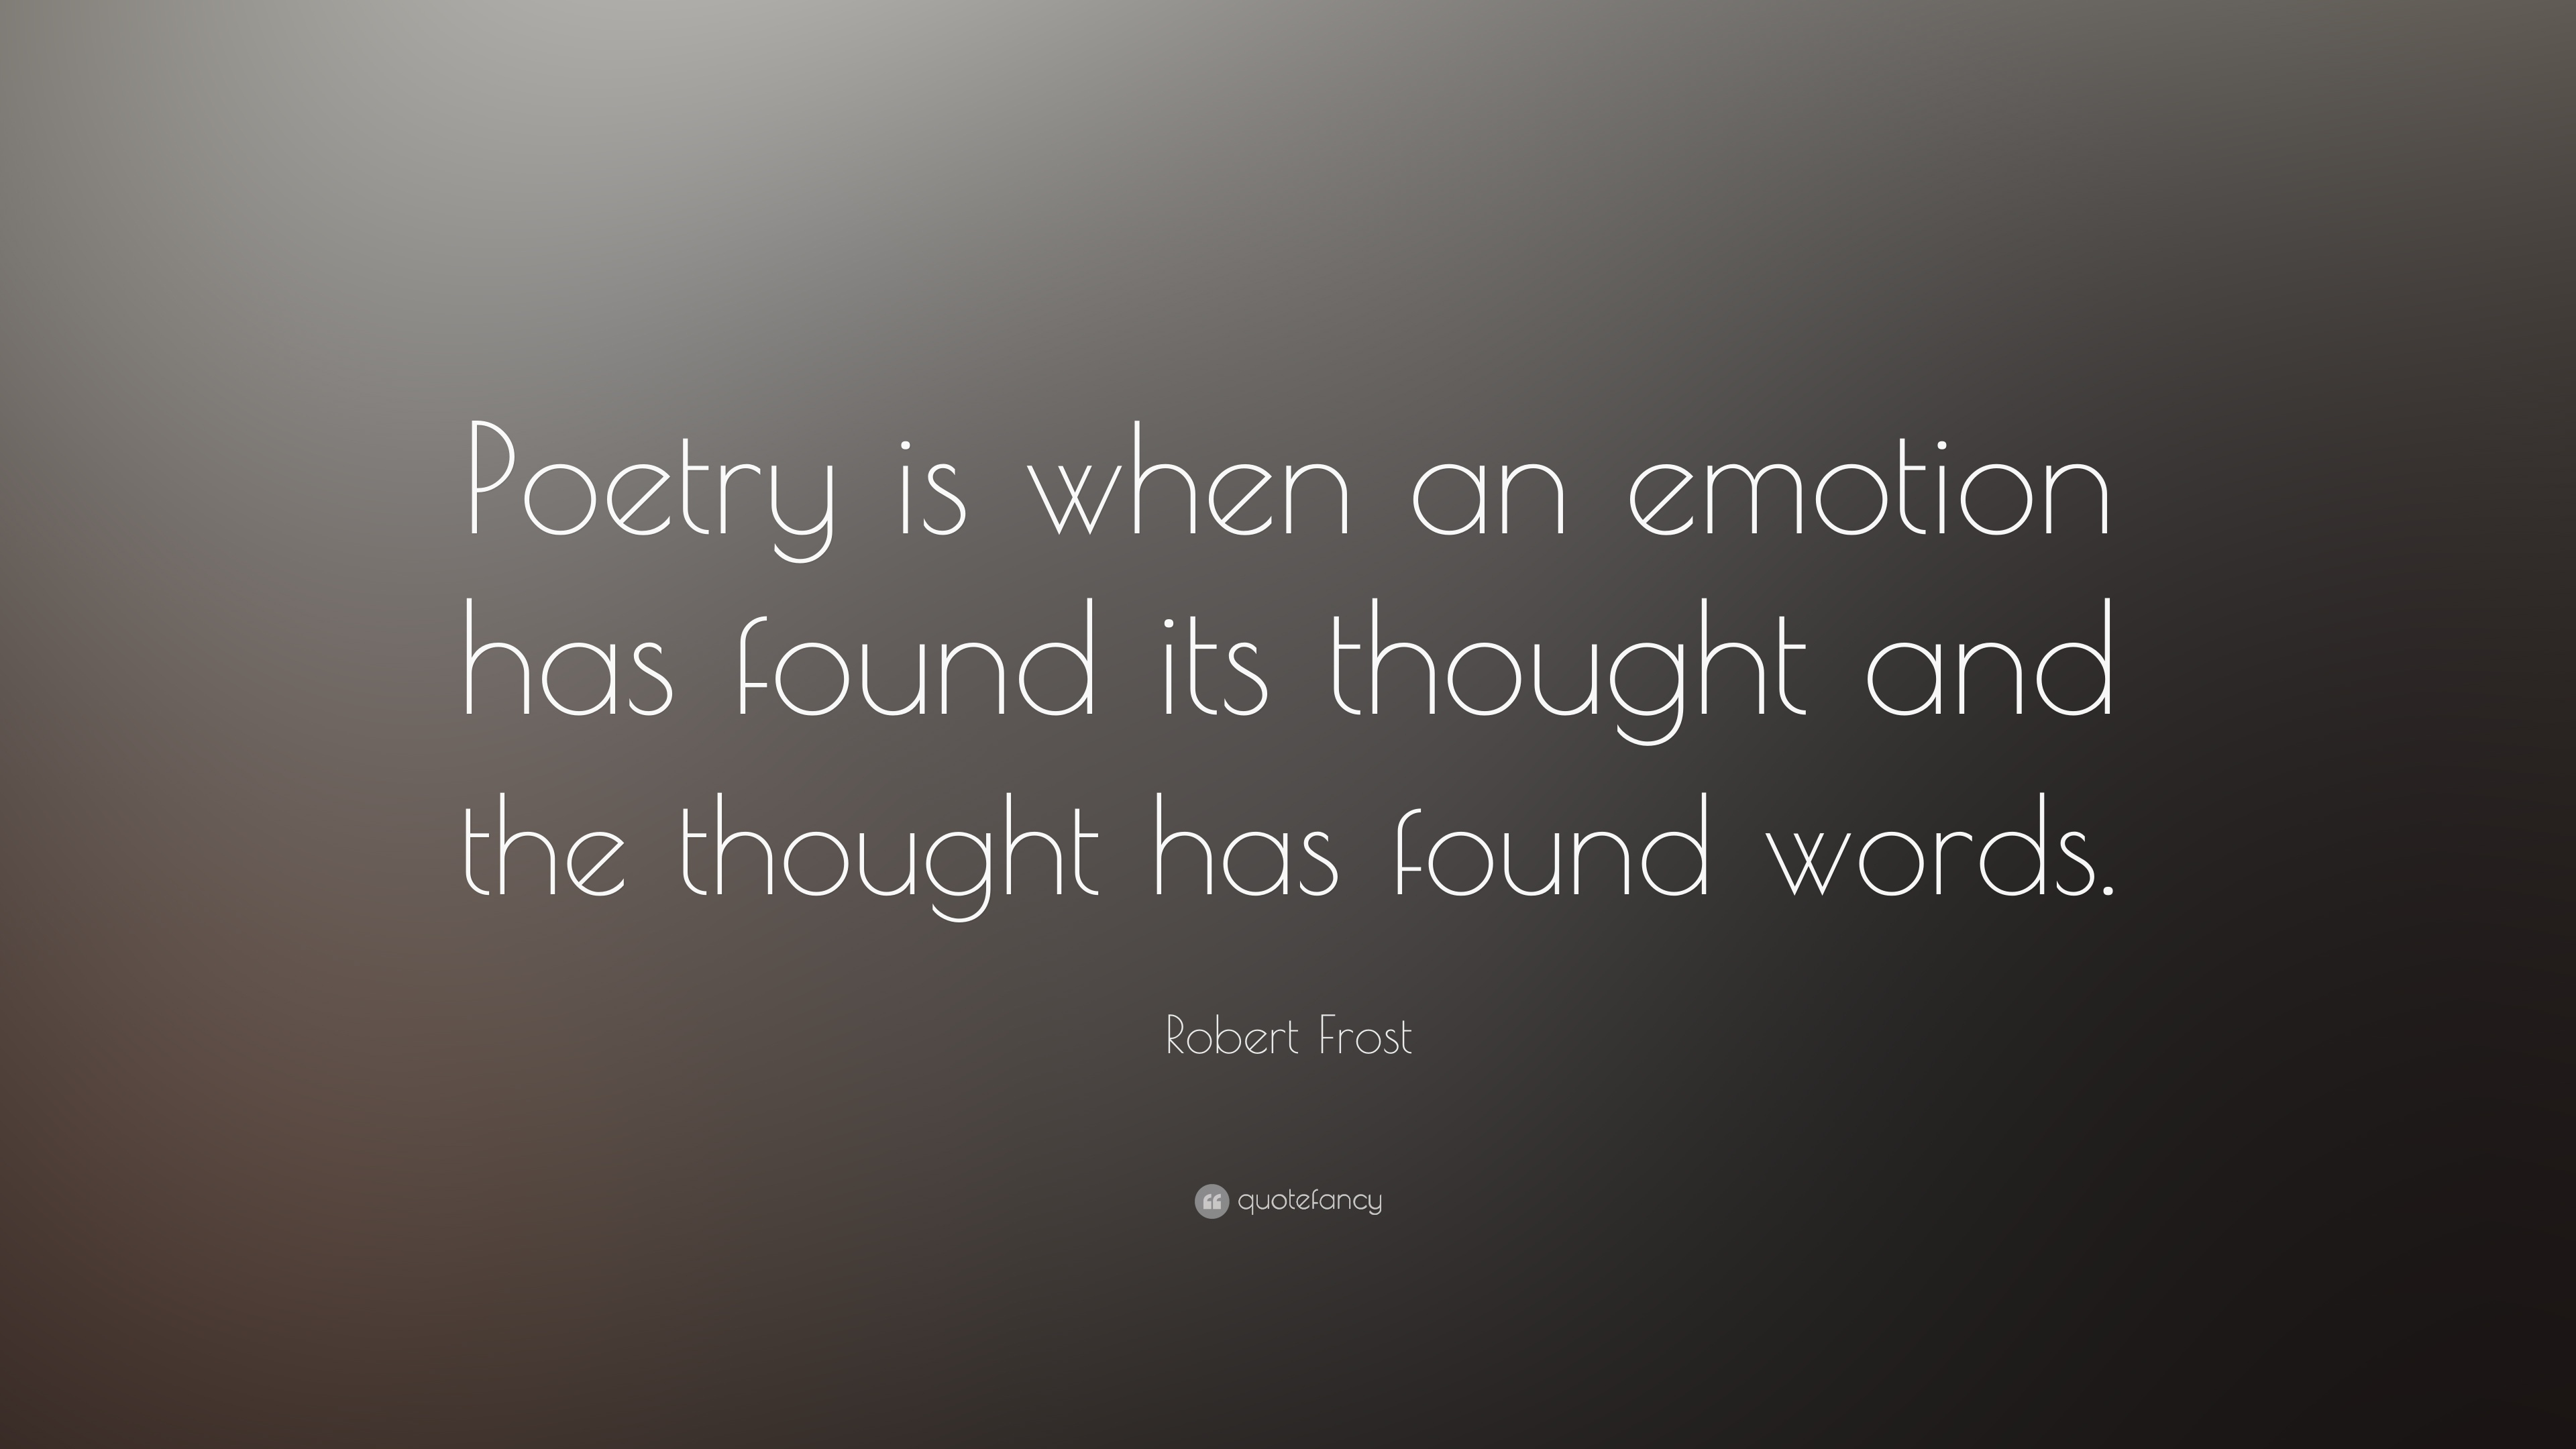 use of poetic conventions